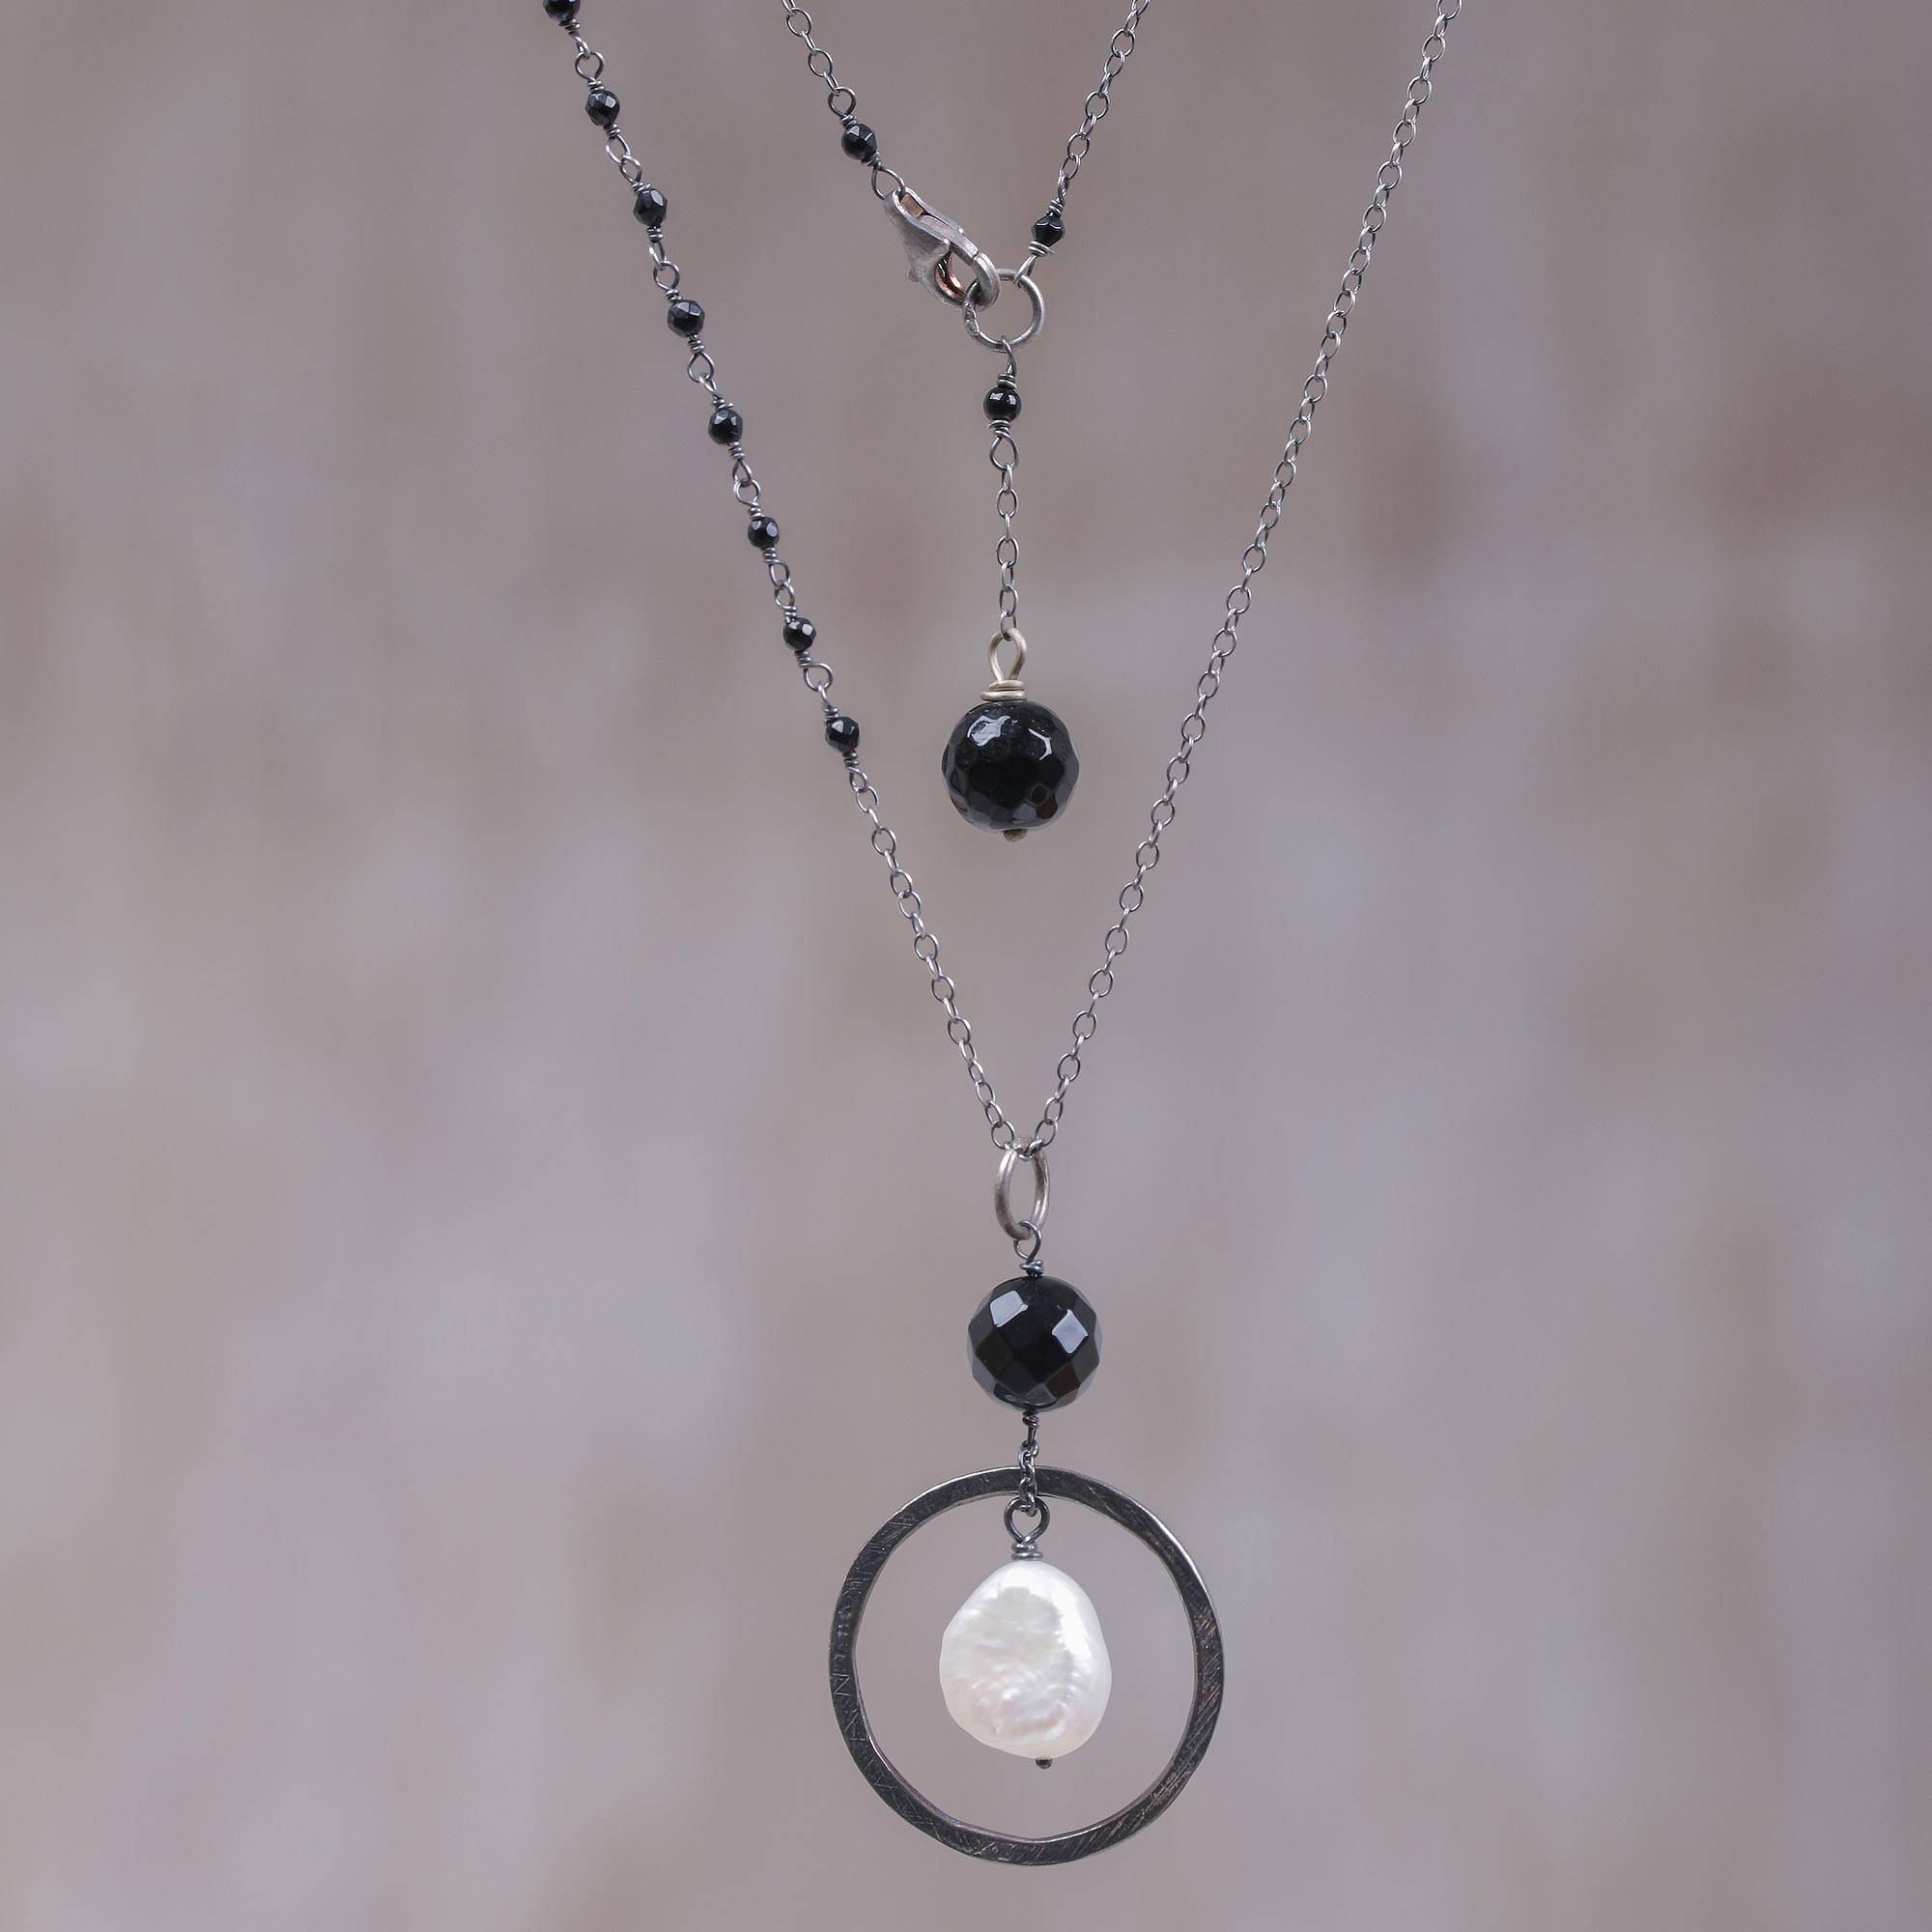 Cultured Pearl and Black Onyx Pendant Necklace from Bali The Perfect Necklace